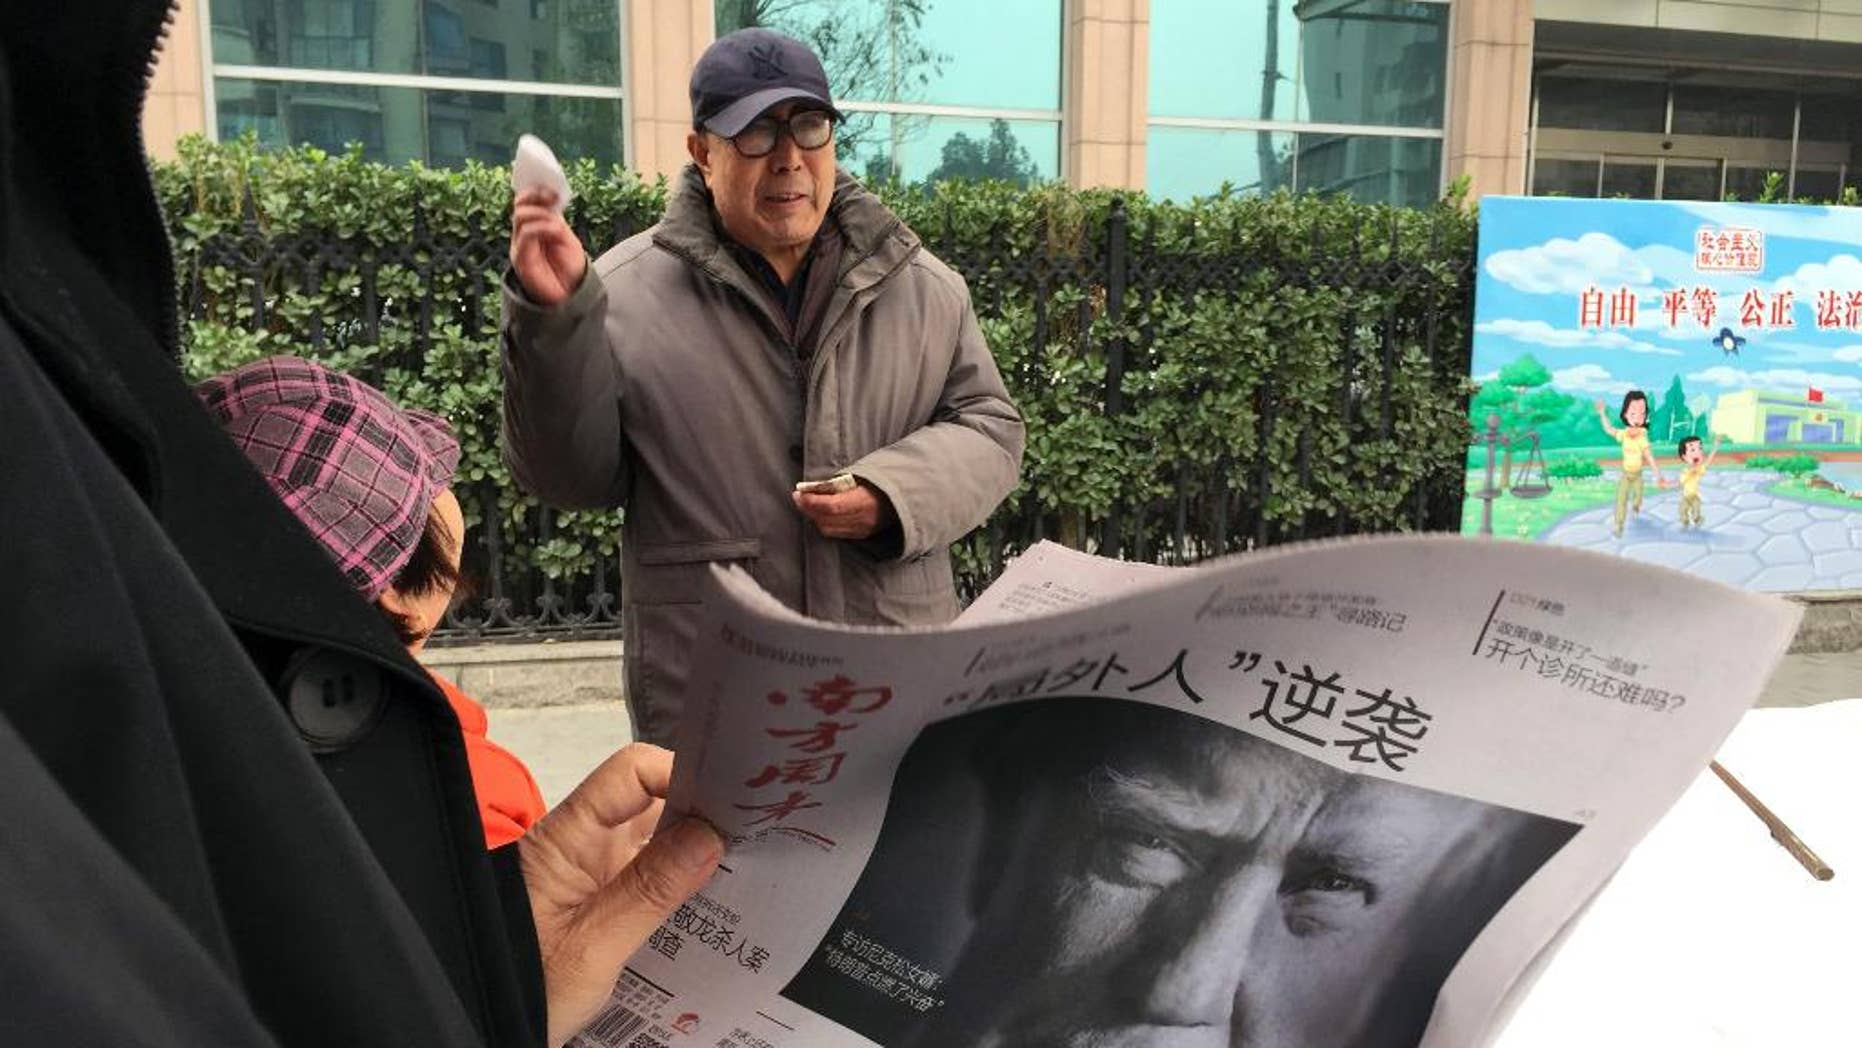 "FILE - In this Nov. 10, 2016 file photo, a Chinese man holds up a Chinese newspaper with the front page photo of U.S. President-elect Donald Trump and the headline ""Outsider counter attack"" at a newsstand in Beijing, China. China views a Trump presidency with less trepidation. Citizens of China's capital Beijing on Saturday are expressing doubts about U.S. President Donald Trump's ability to steer the U.S. economy and manage China-American relations. (AP Photo/Ng Han Guan, File)"